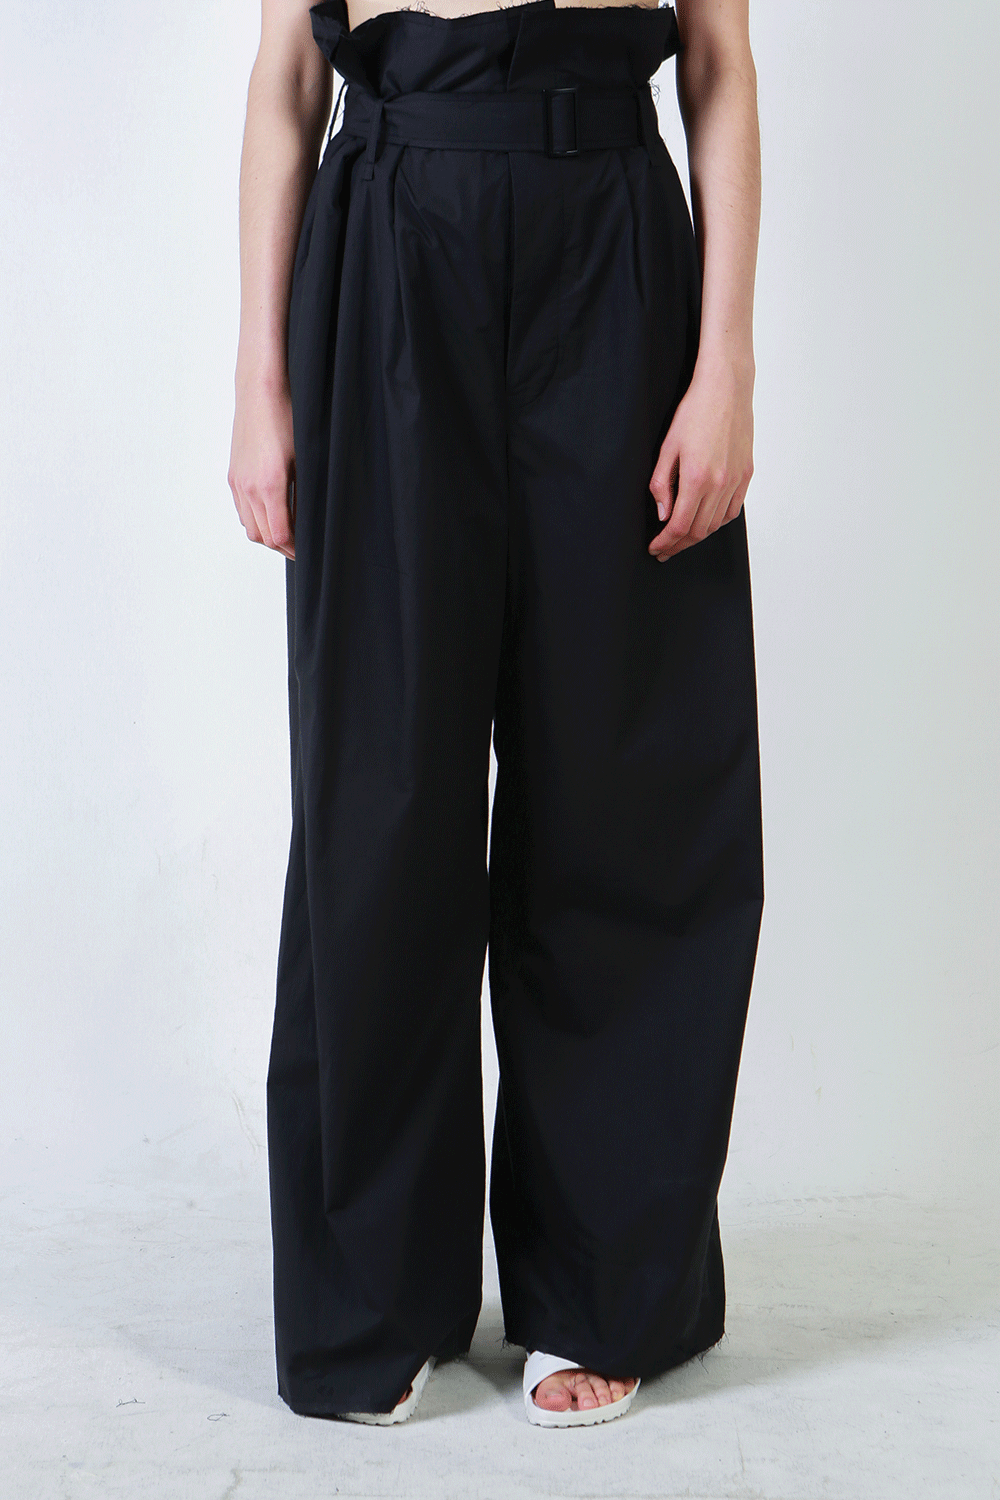 S/S18 MOON HIGH WAIST PANTS_BLACK